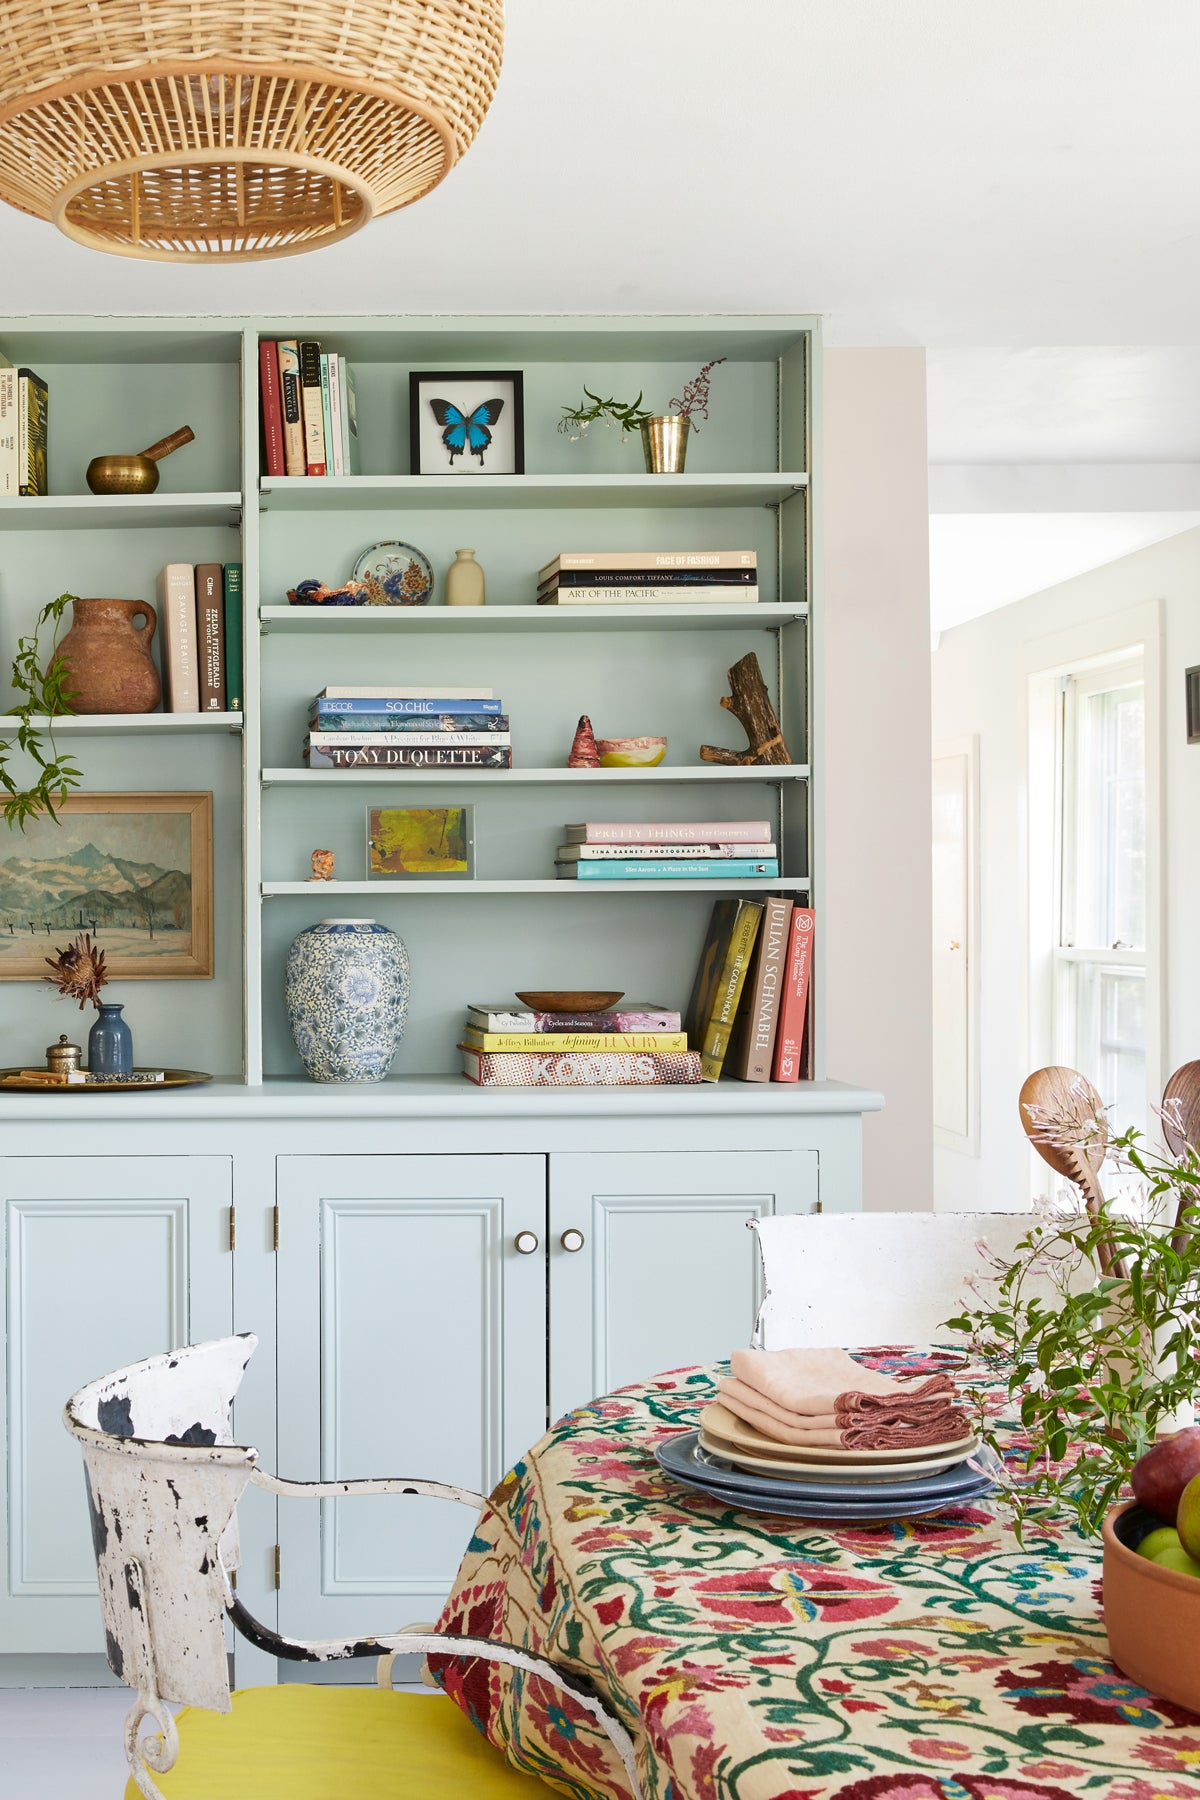 Pink Walls, Green Built-Ins: Inside a Hudson Valley Cottage Beaming With Color